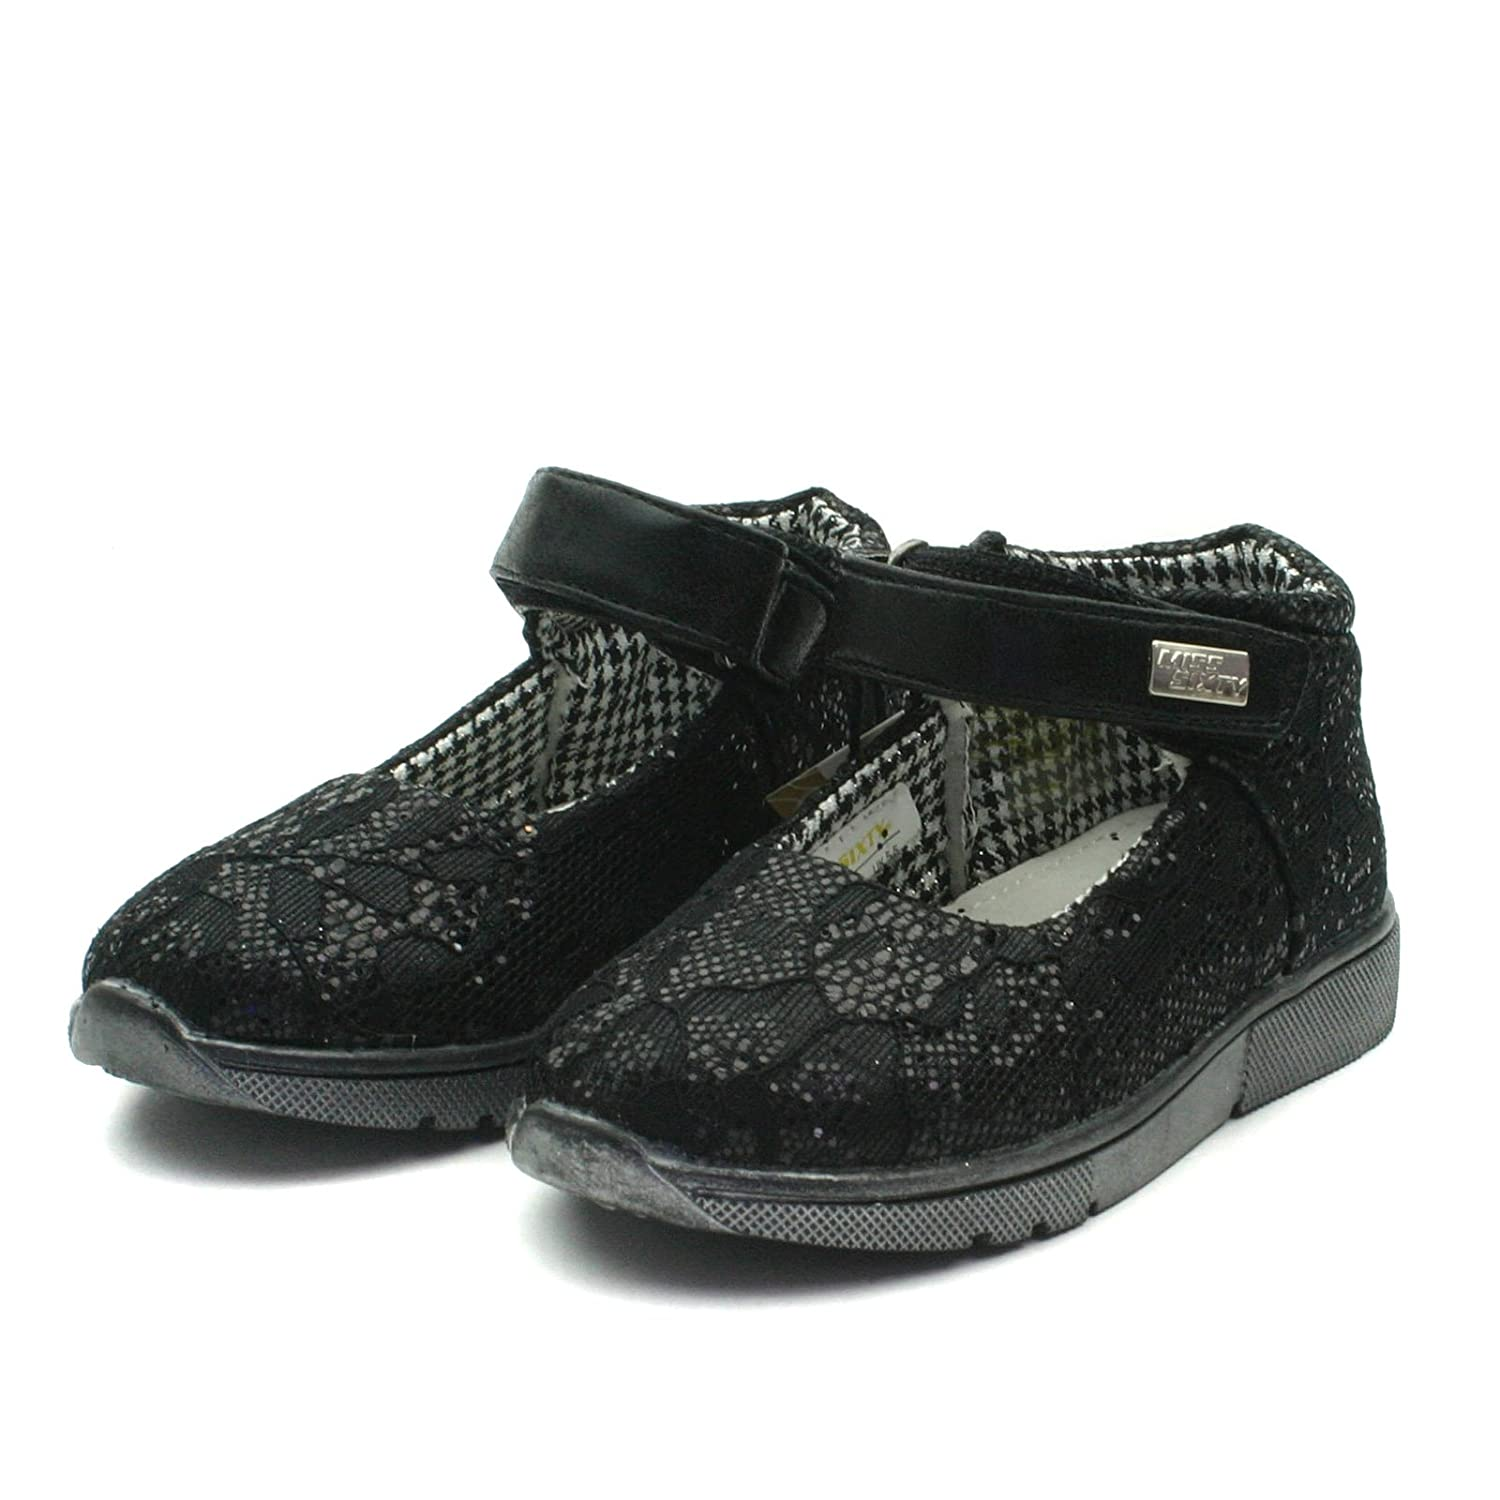 Miss Sixty MS003 Mary Jane Shoe Ankle Strap for Girls >> Chaussures avec Boucle Cheville pour Les Filles